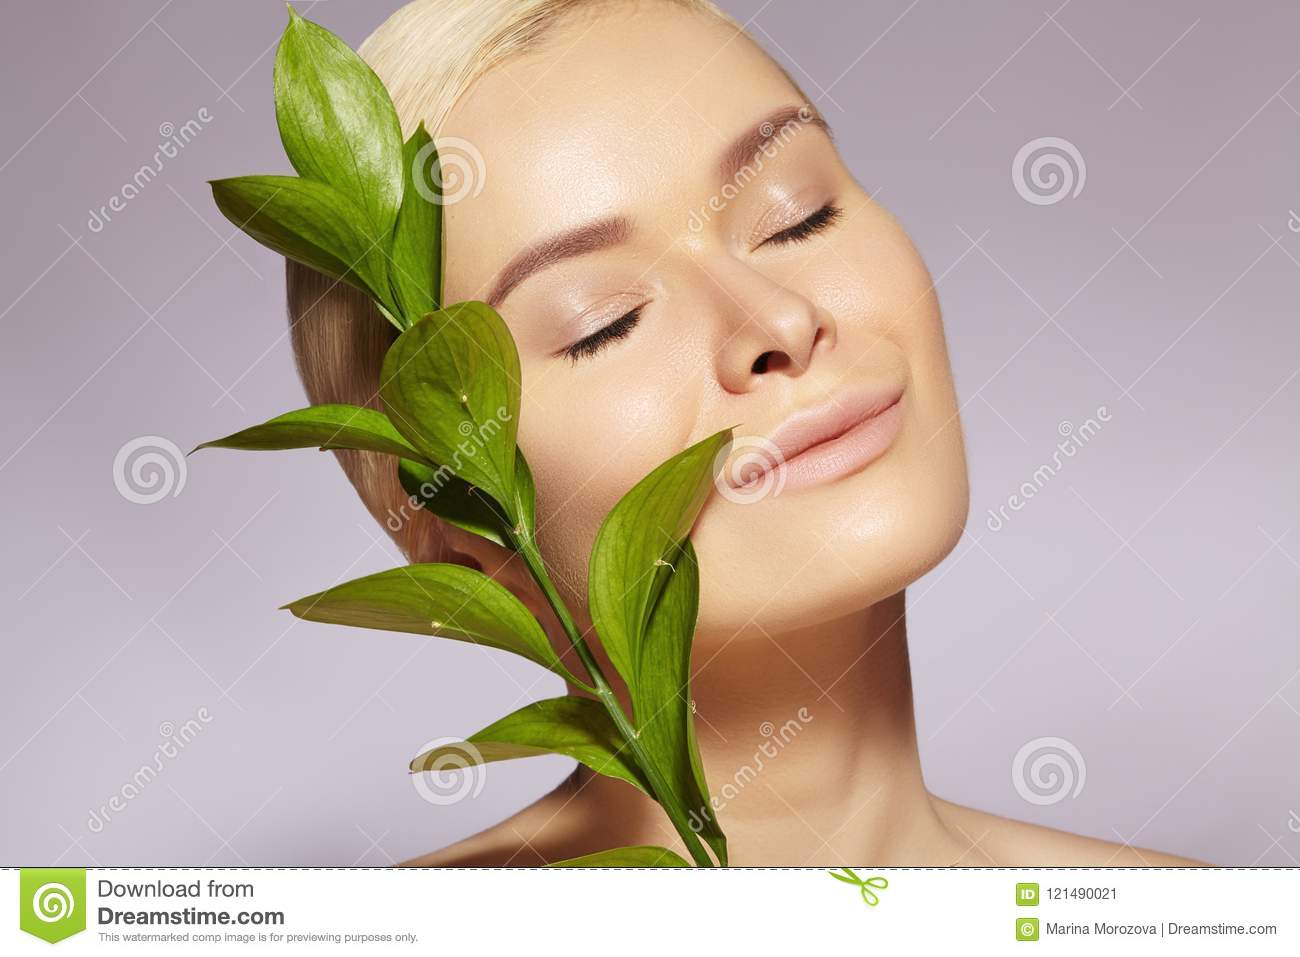 Beautiful Woman applies Organic Cosmetic. Spa and Wellness. Model with Clean Skin. Healthcare. Picture with Leaf